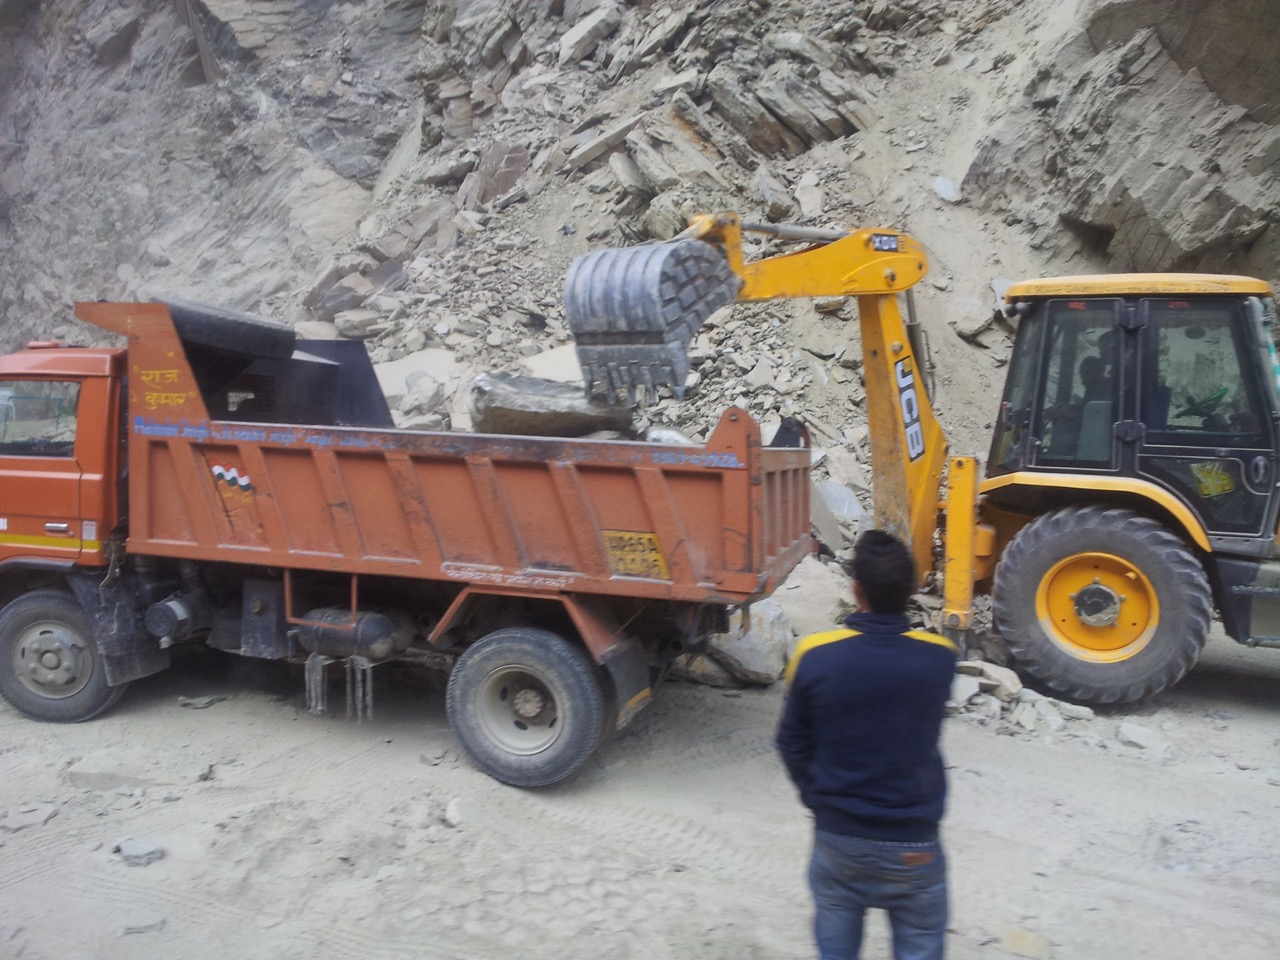 There was a landslide on Mandi tunnel road between Aut and Pandoh on Dec 7th. The debris are still being cleared.